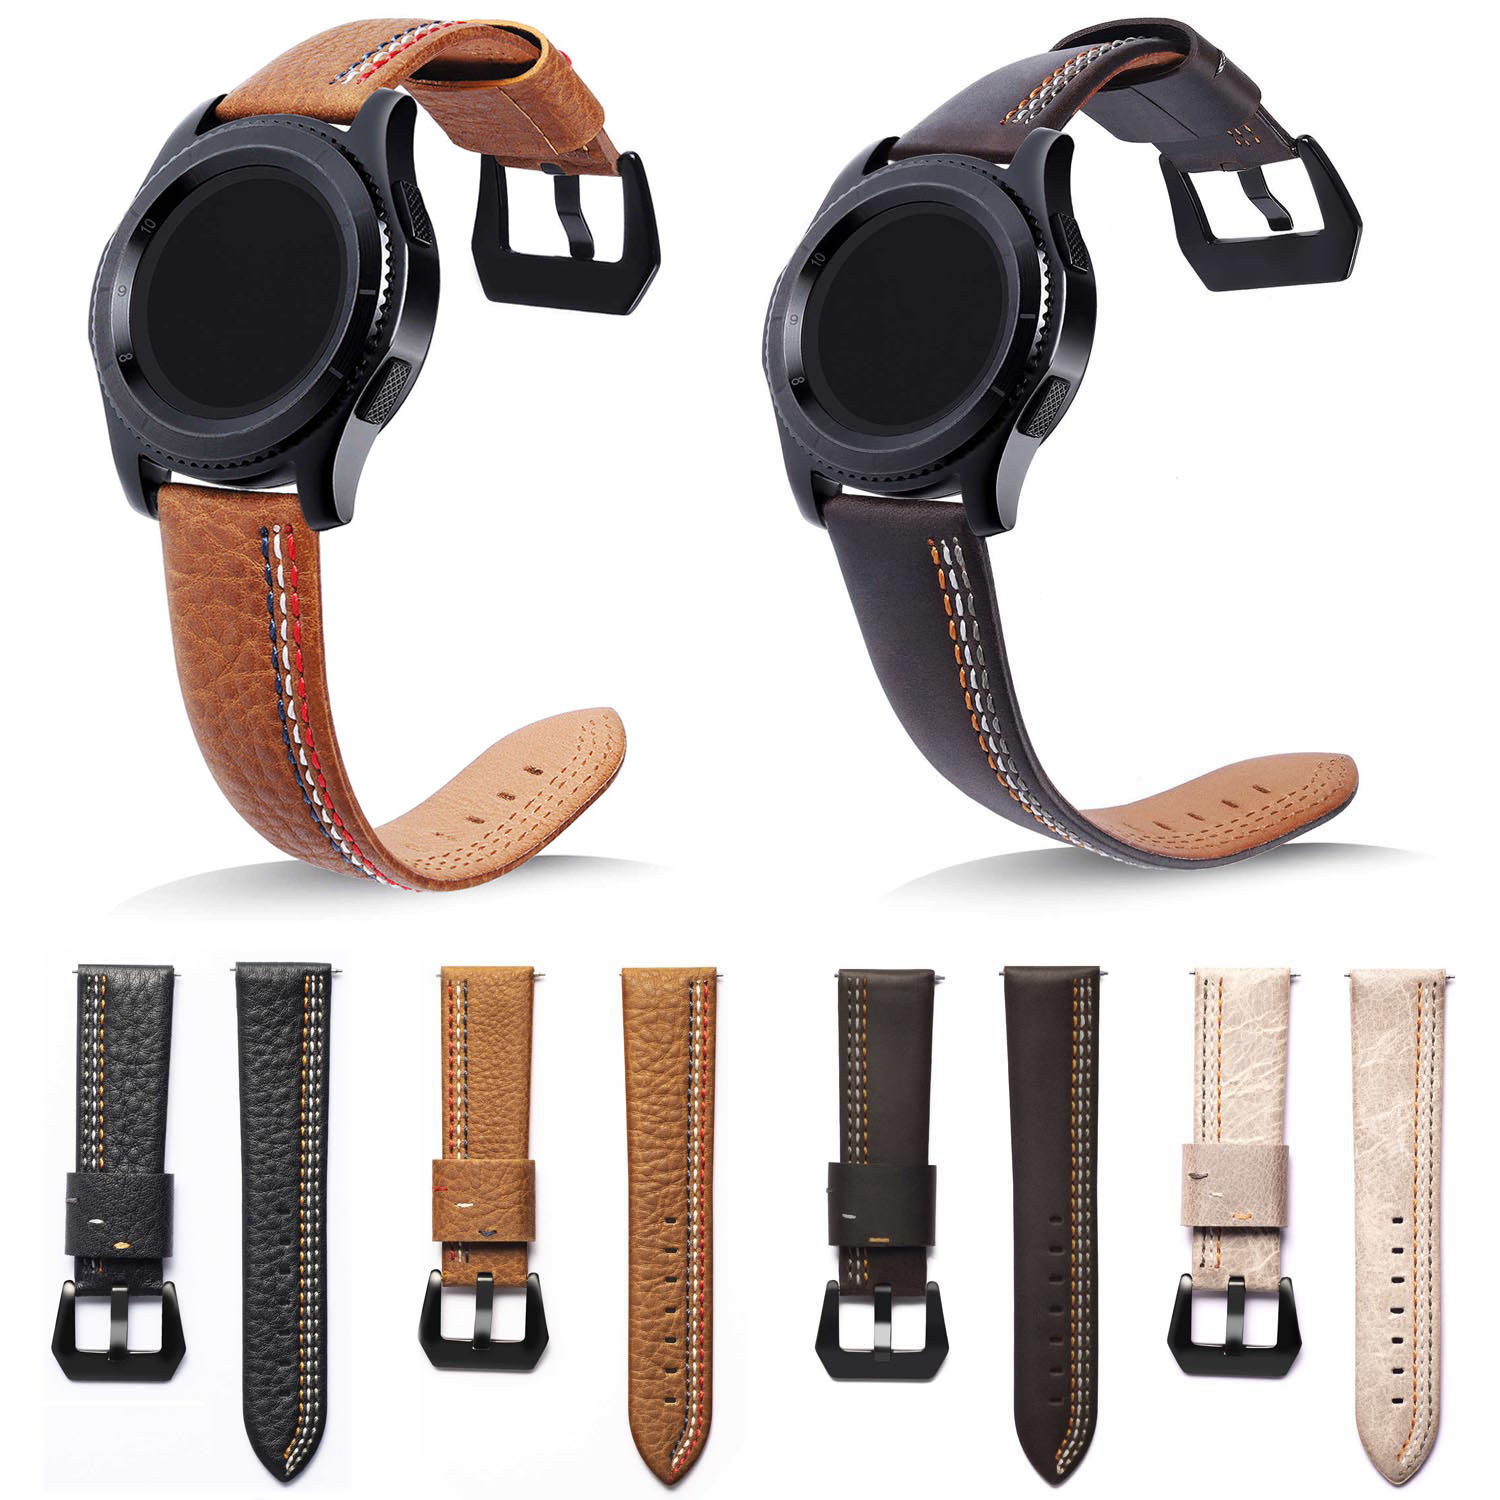 Retro Genuine Classic Leather Strap For Samsung Gear S3 Band Frontier Strap For Gear S3 Classic Watchband 22mm Watch Bracelet tearoke 11 color silicone watchband for gear s3 classic frontier 22mm watch band strap replacement bracelet for samsung gear s3